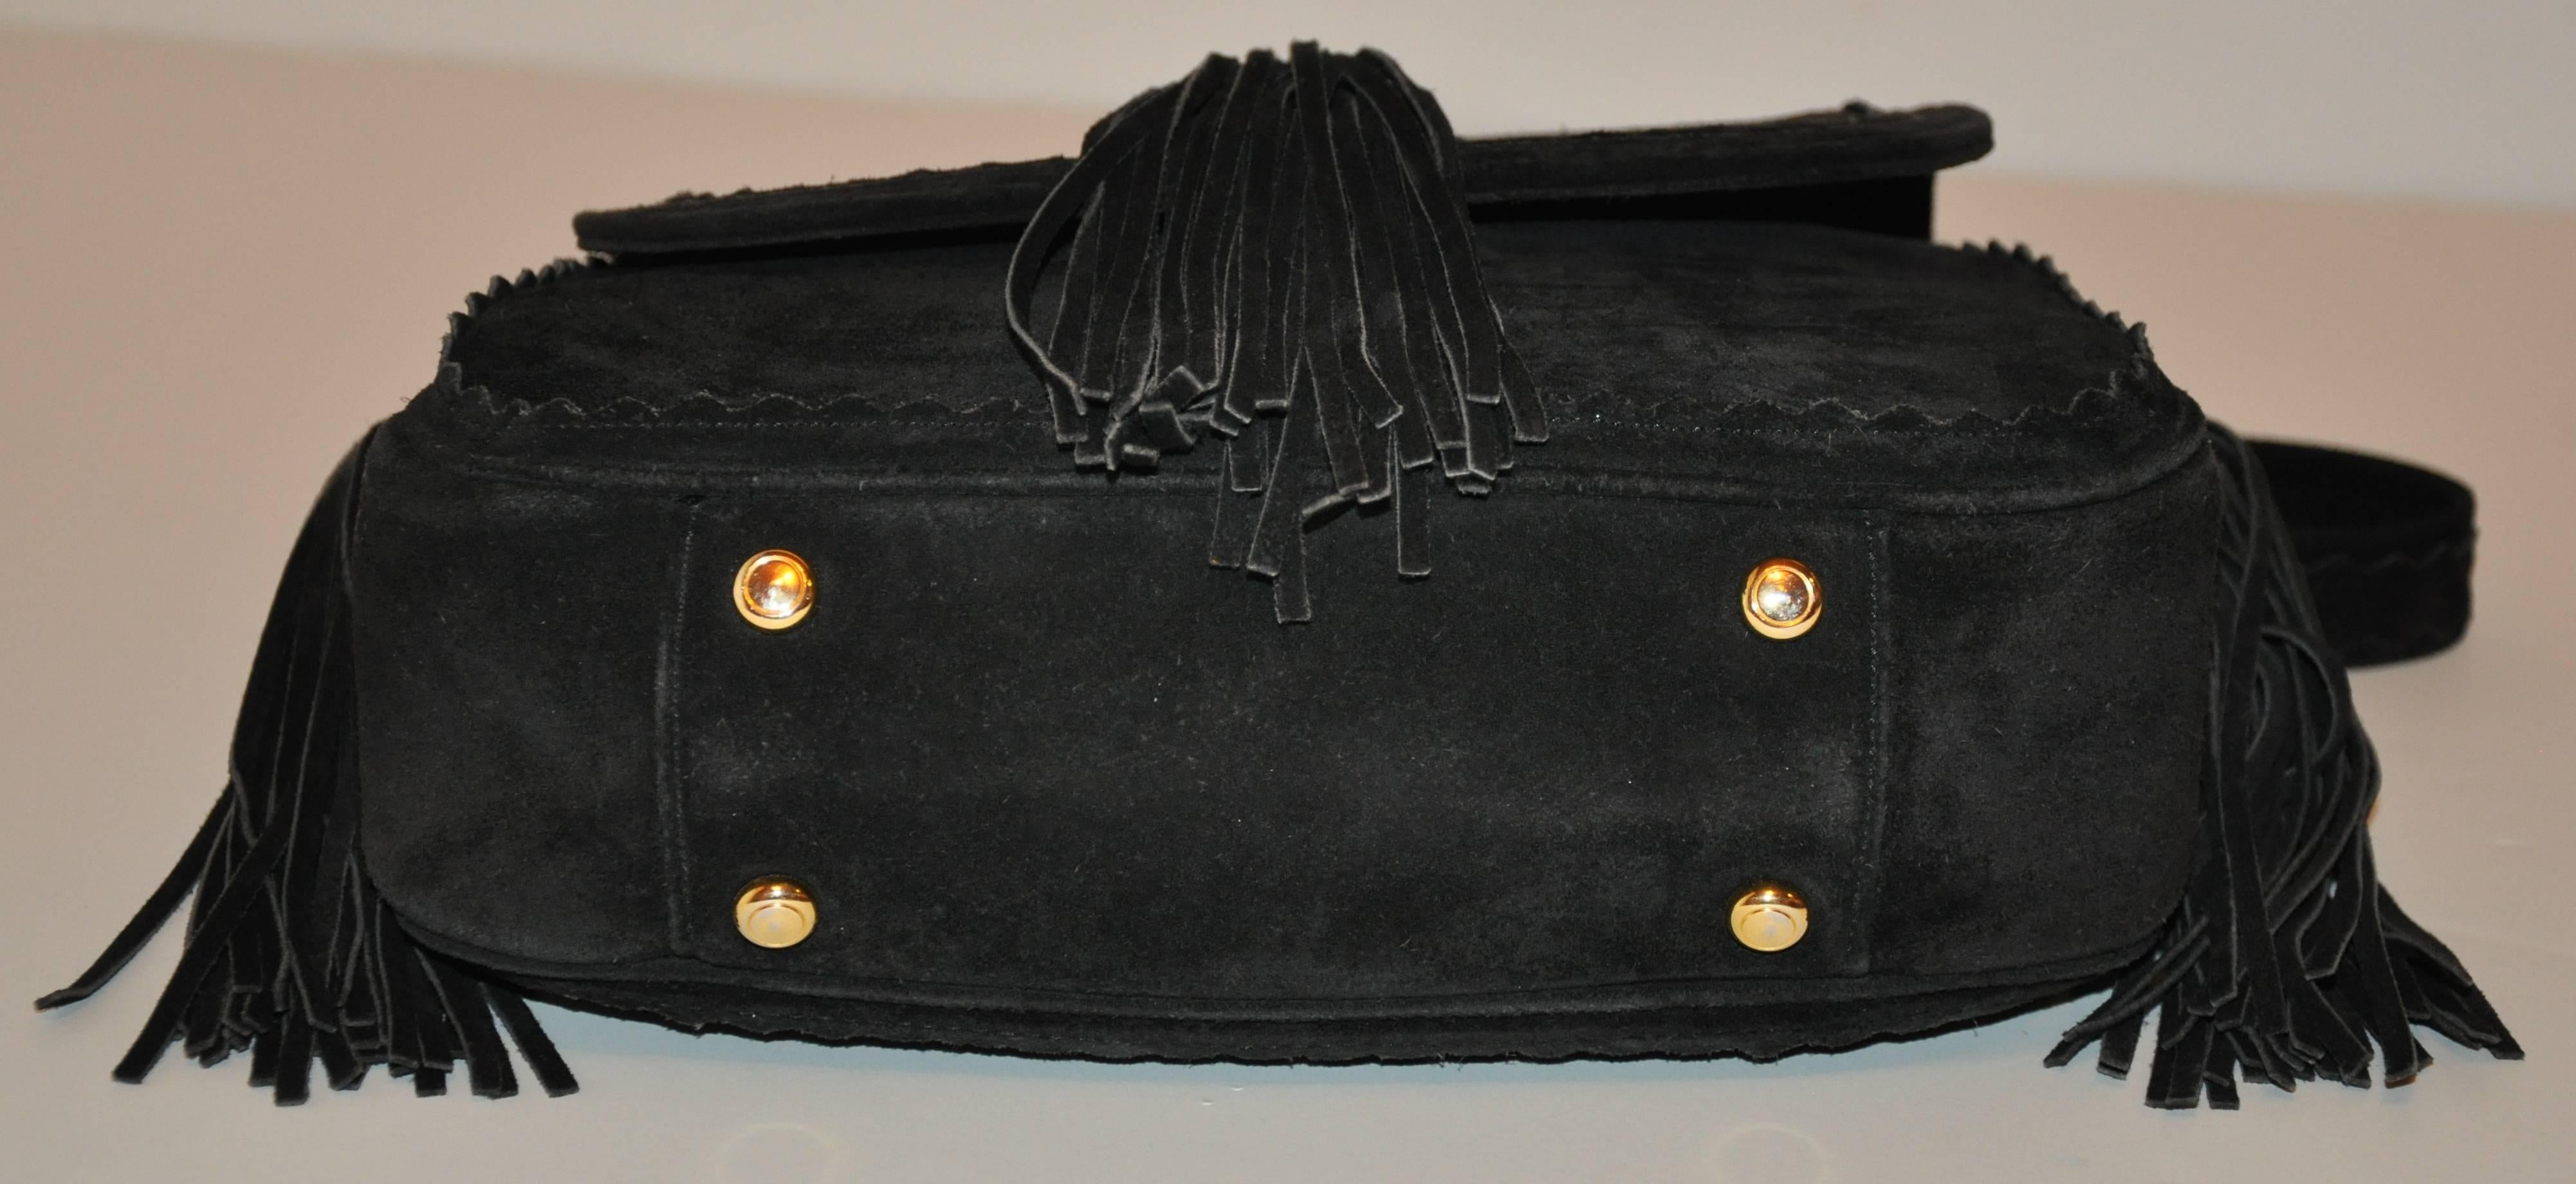 Moschino Midnight Black Lambskin Suede With Tassels Accent Shoulder Bag